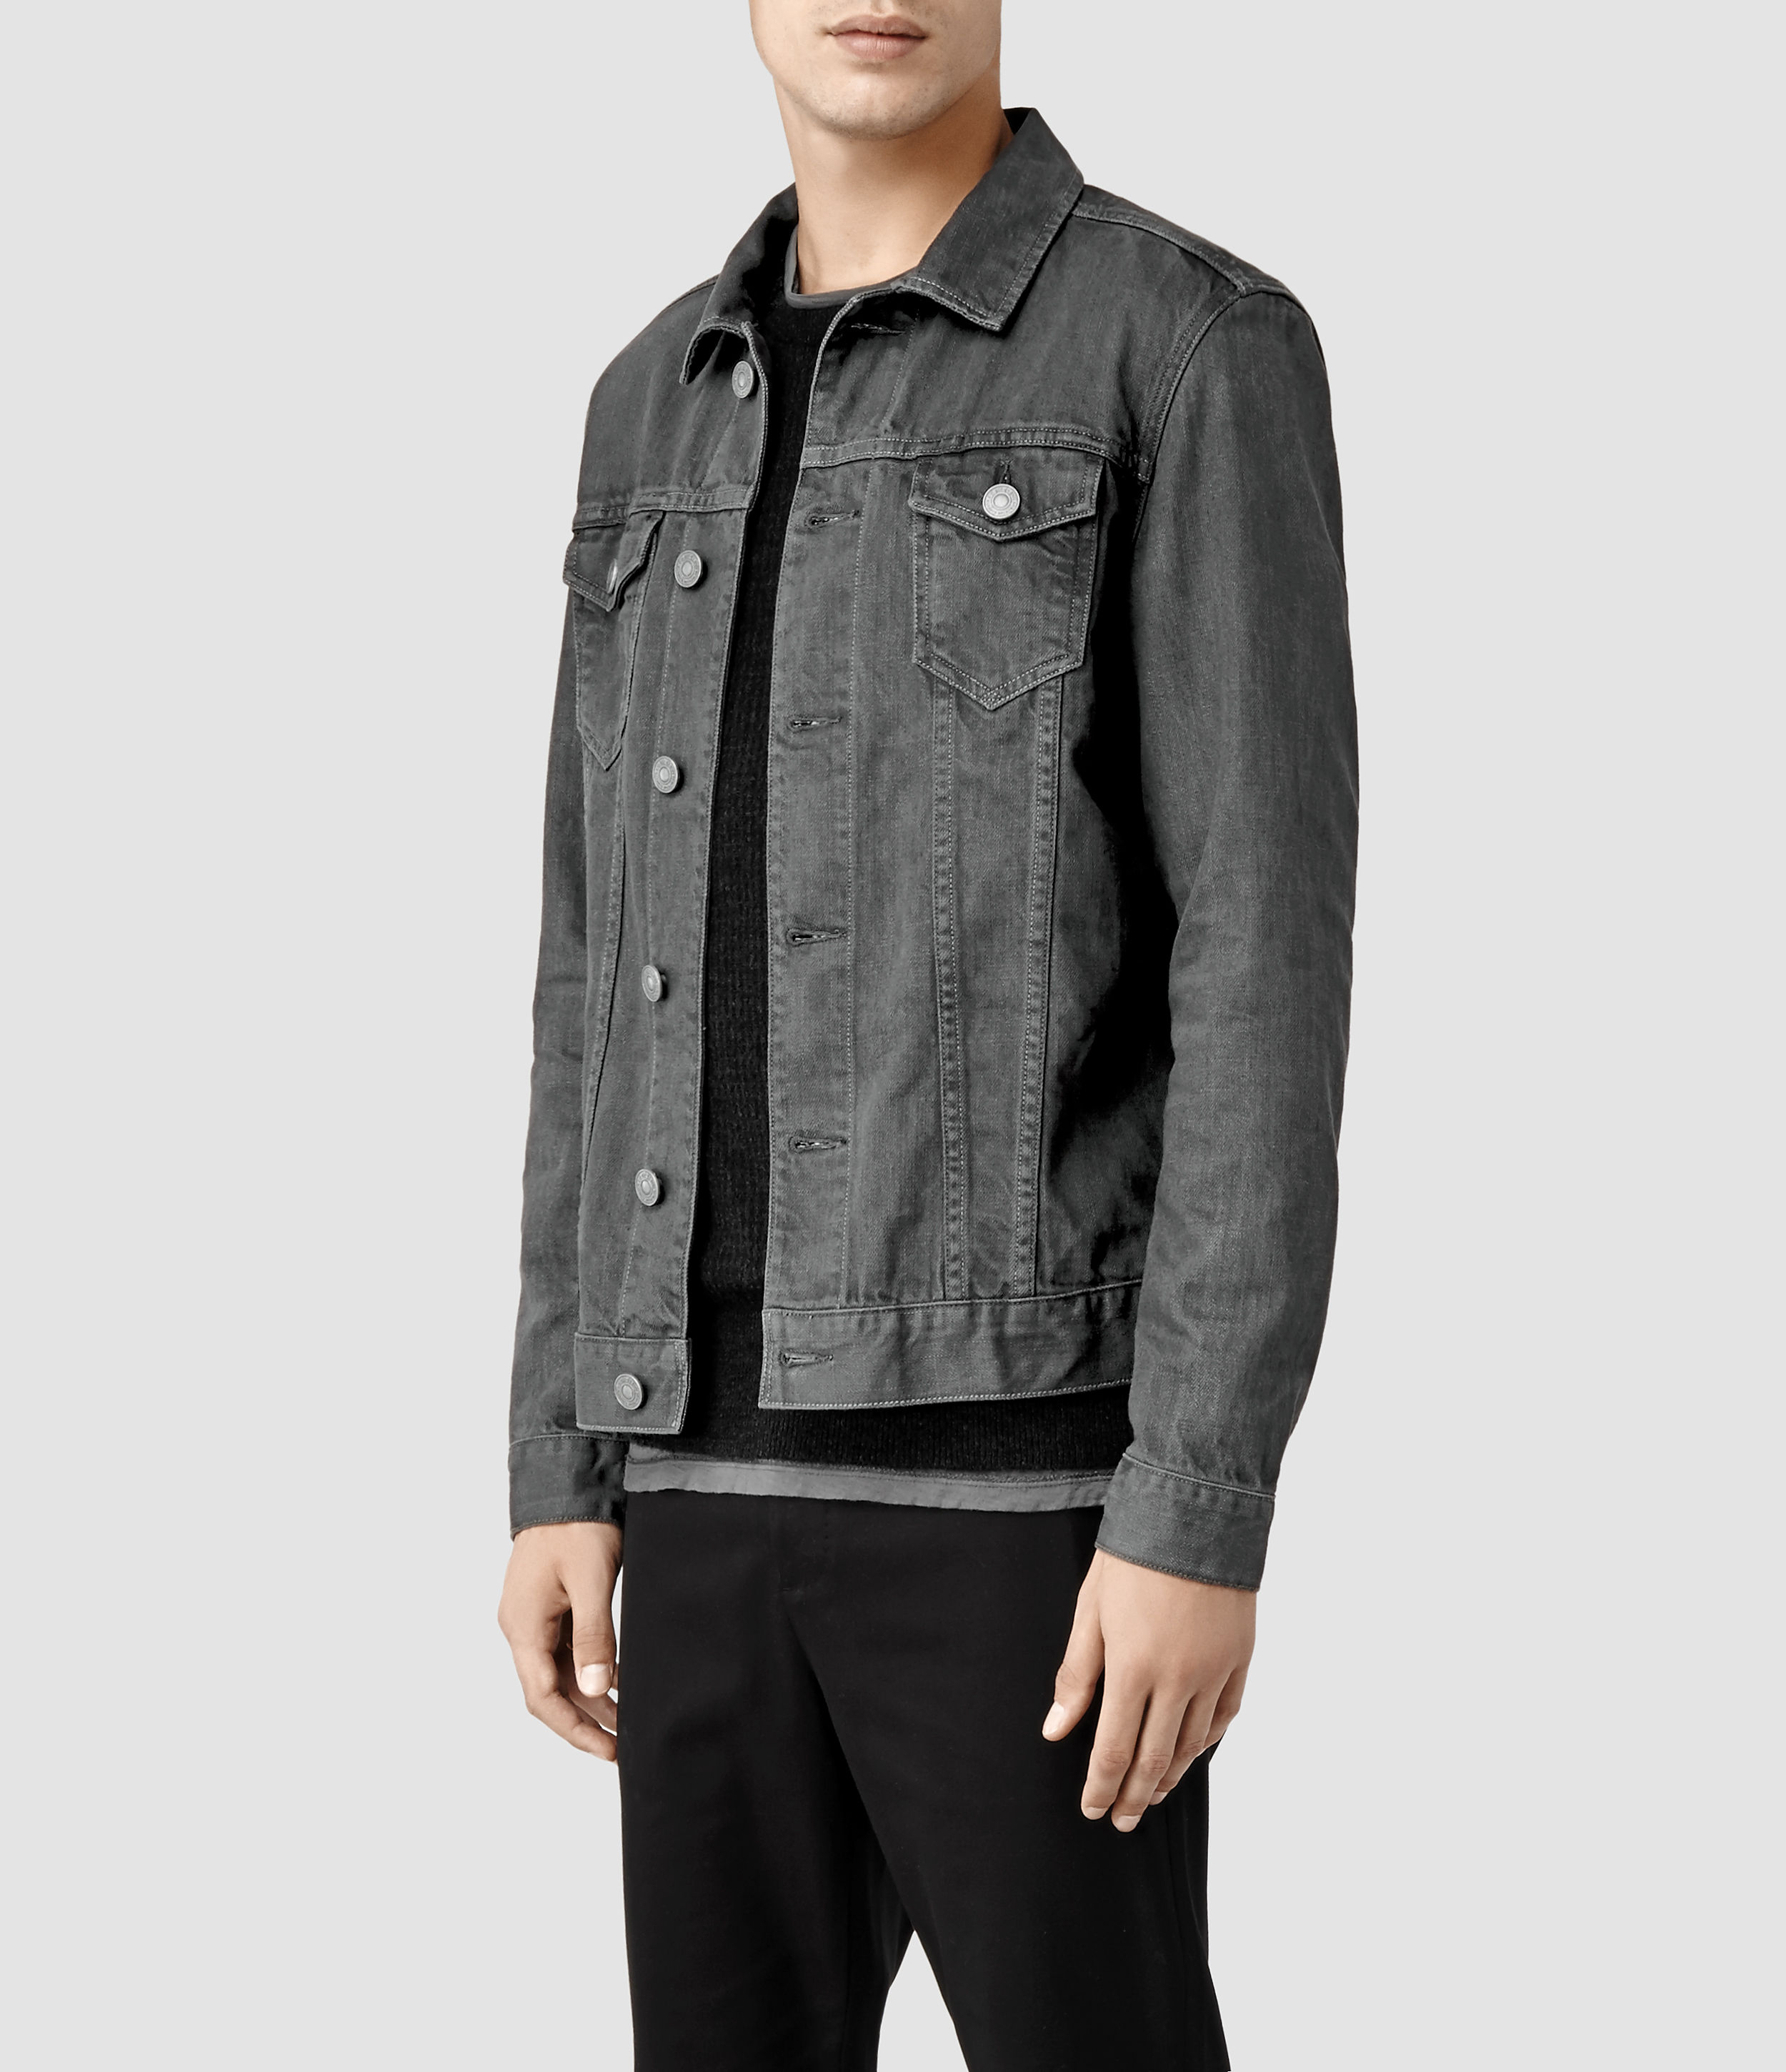 Allsaints Setsu Denim Jacket in Gray for Men | Lyst